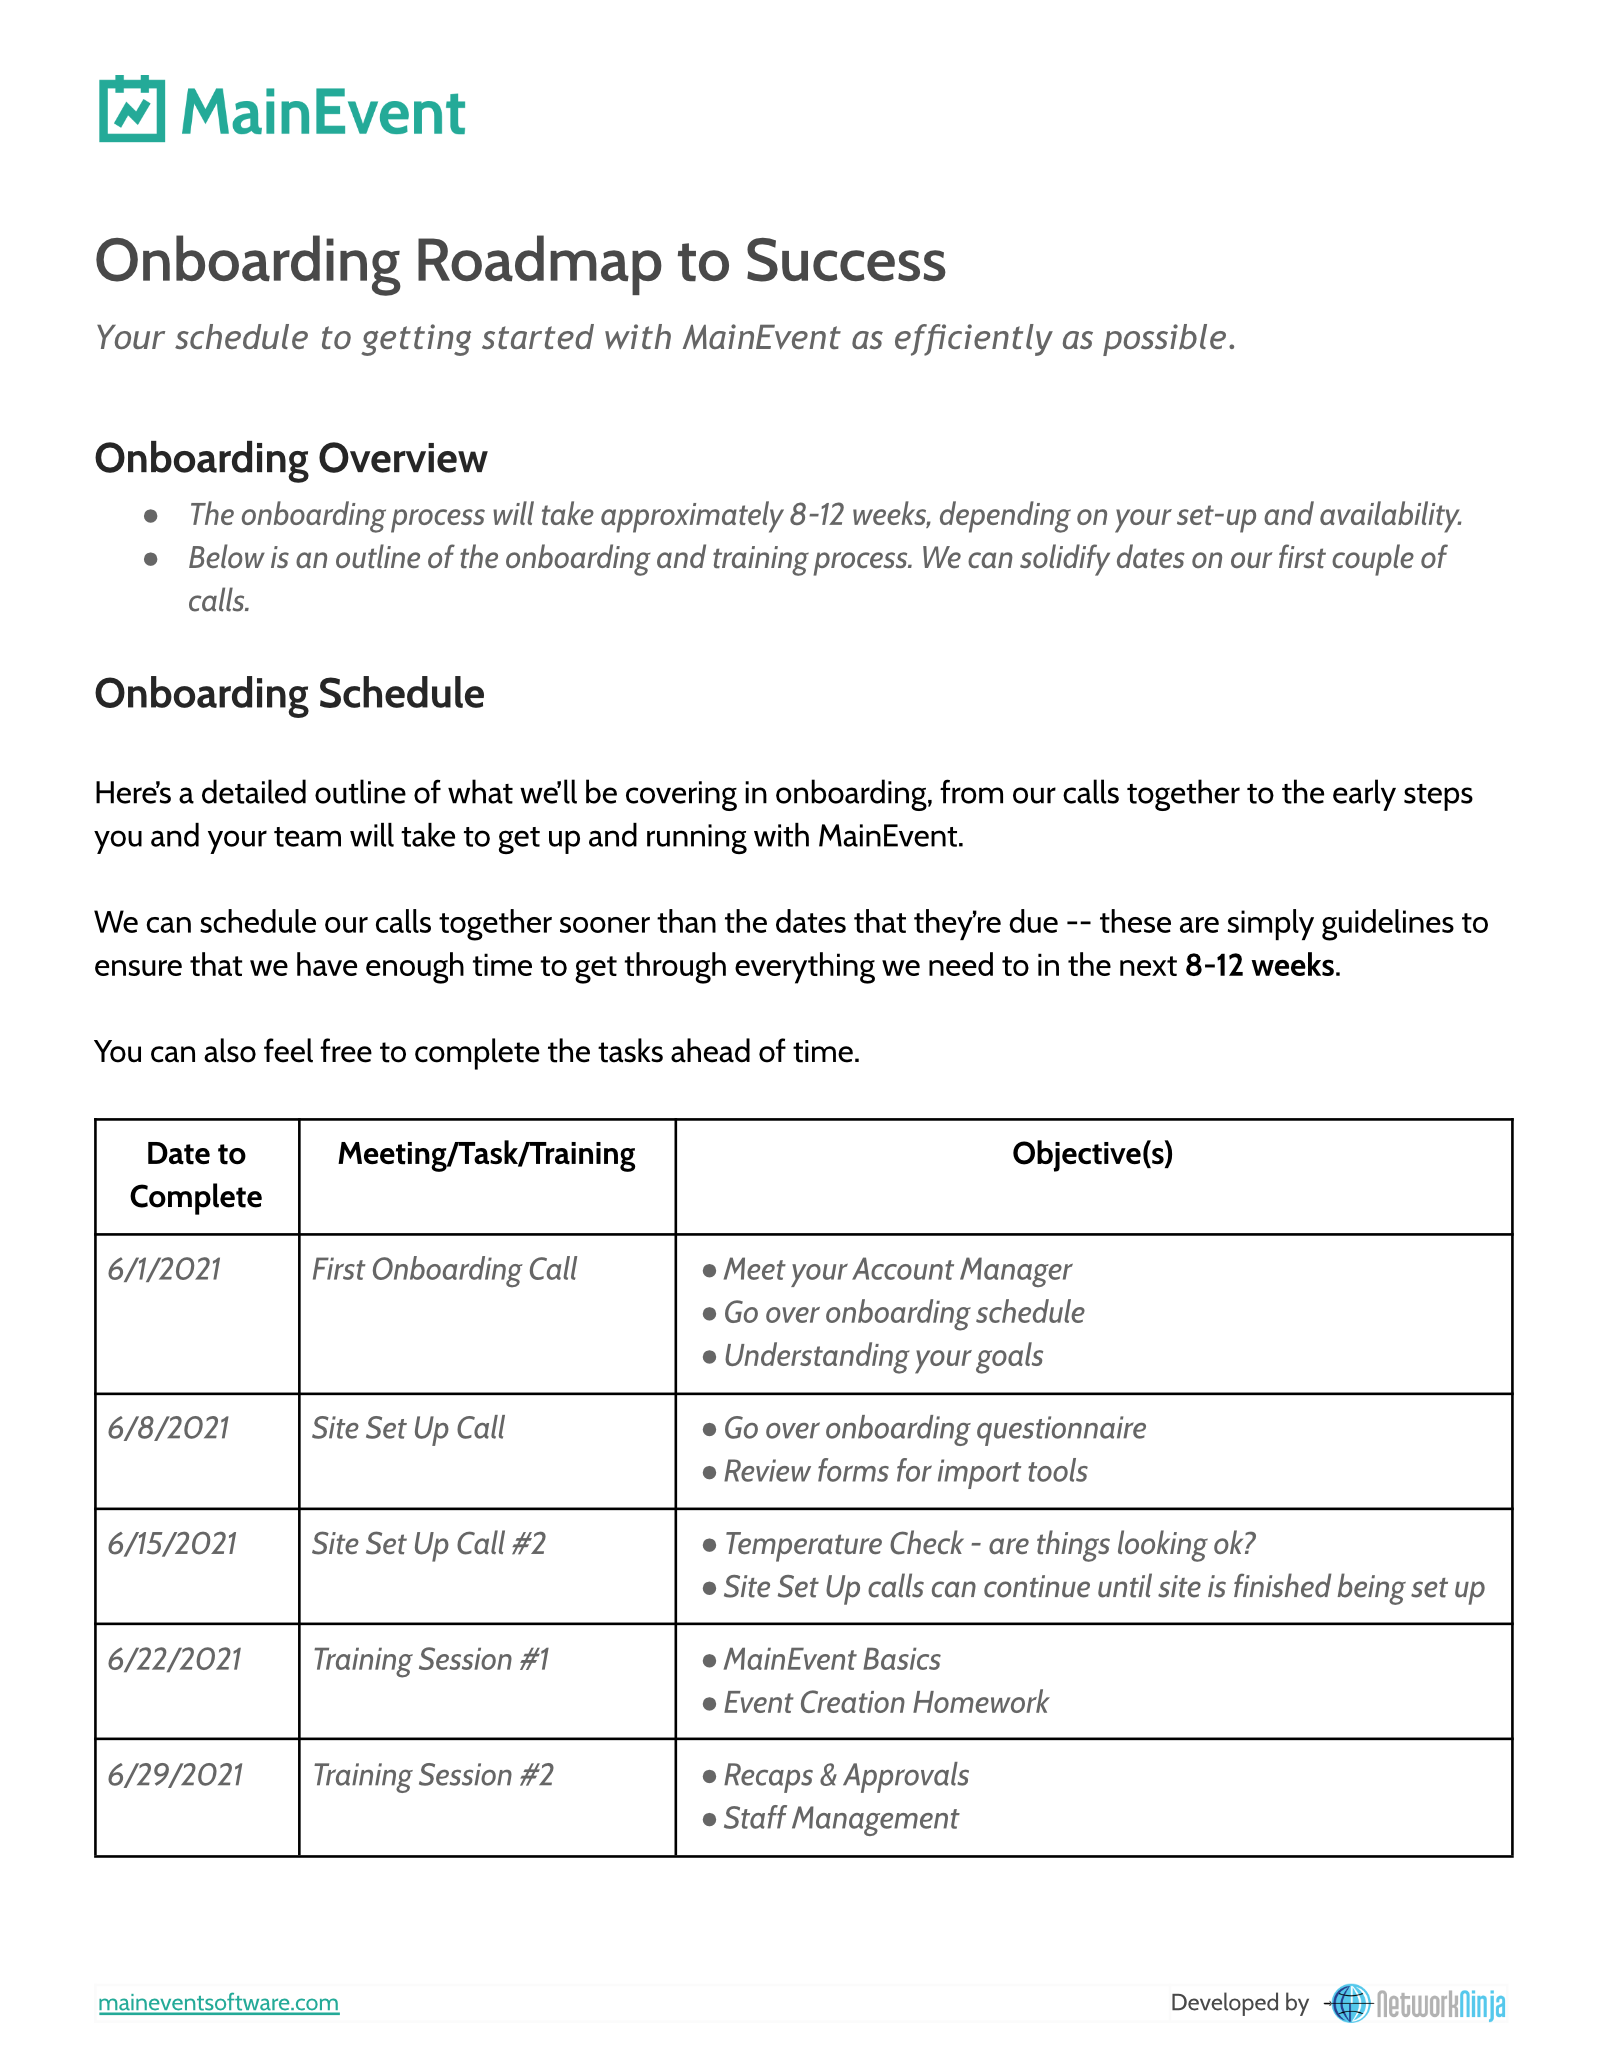 Screenshot showing MainEvent's Onboarding Roadmap document.